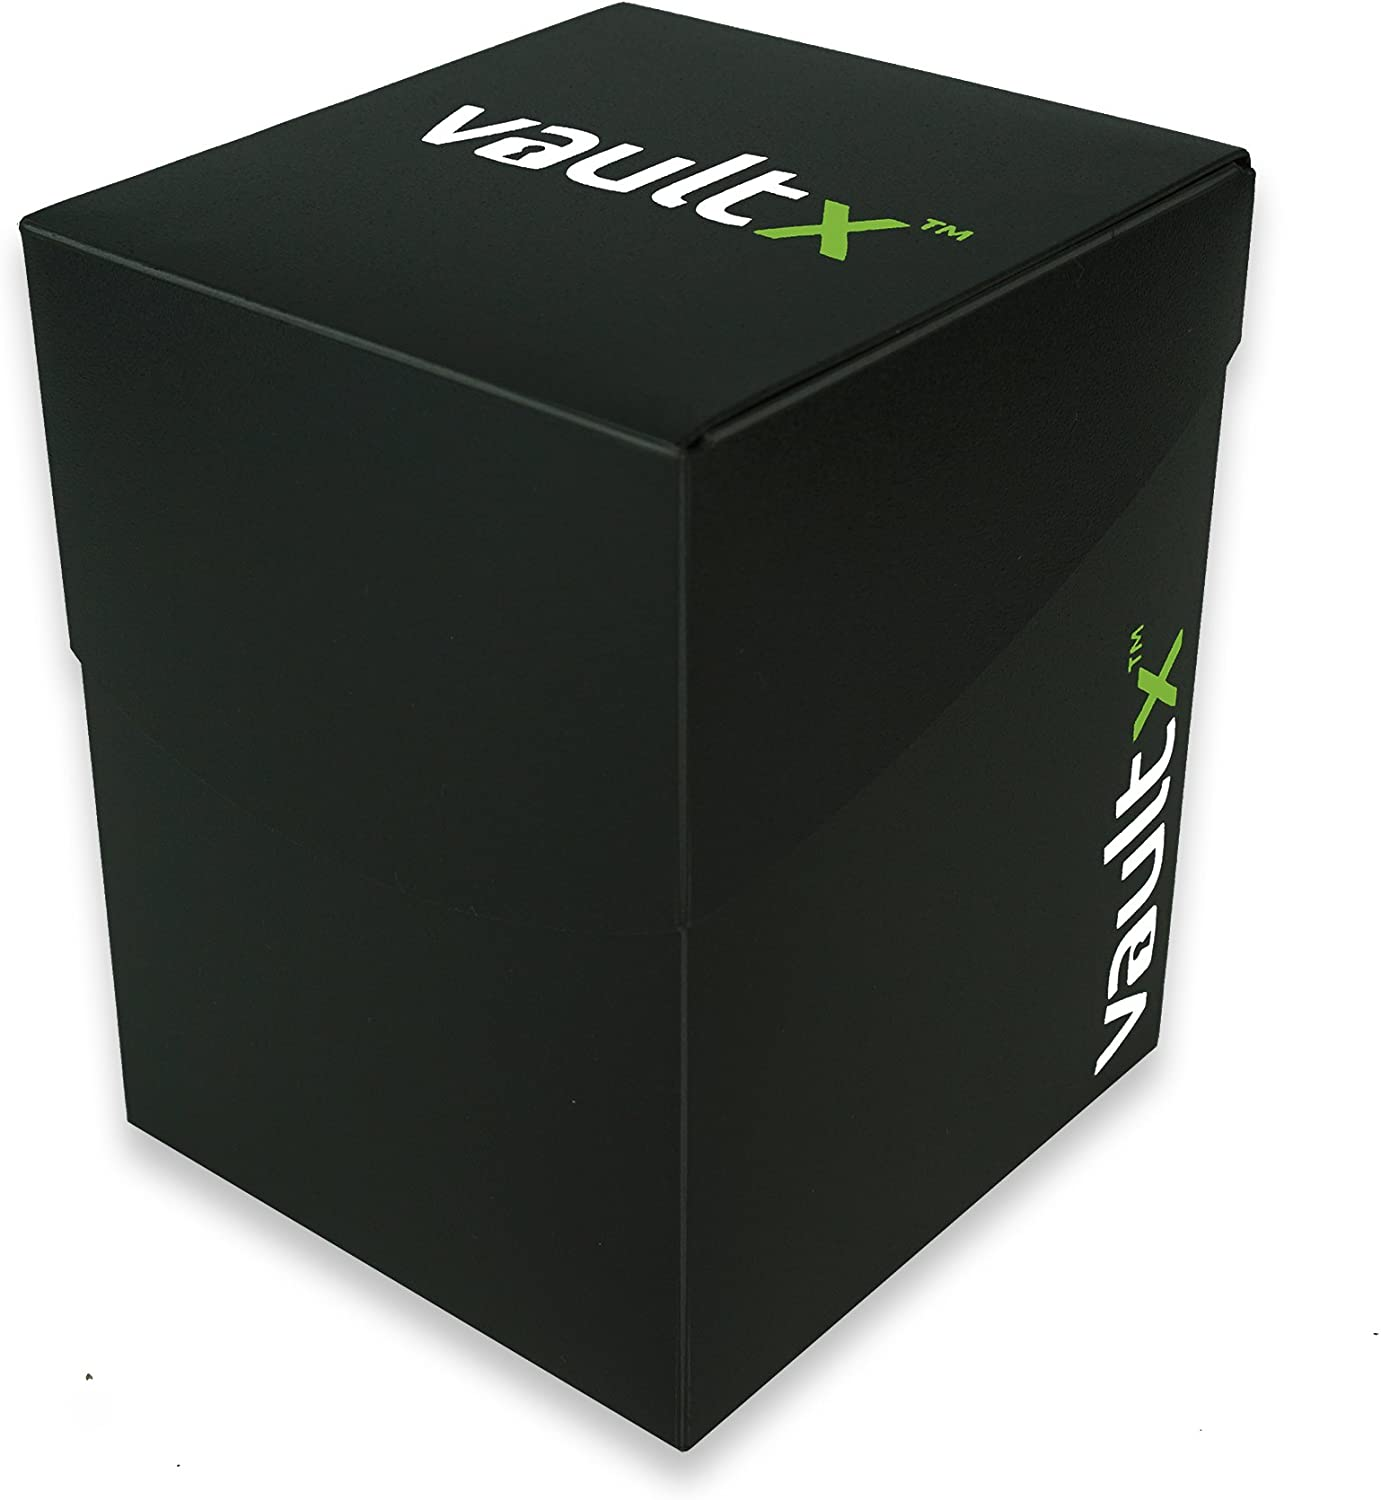 Vault X Deck Box and 150 Black Card Sleeves Black PVC Free Card Holder for TCG Large Size for 120-130 Sleeved Cards